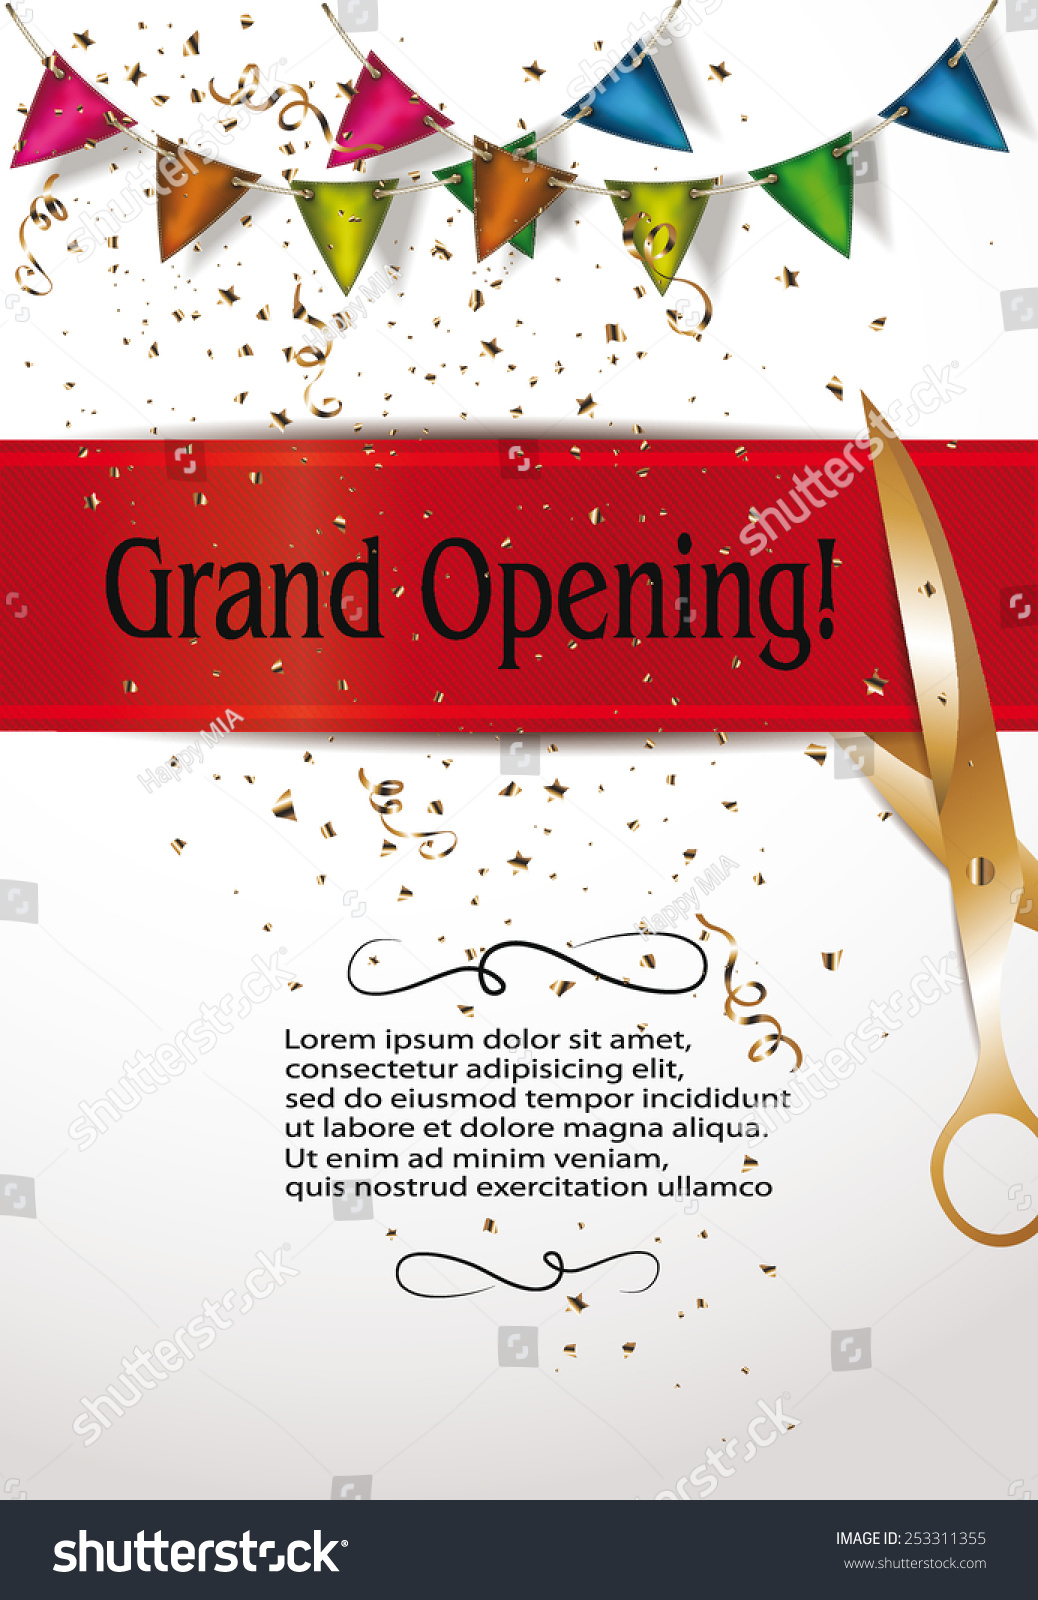 Royalty Free Grand Opening Invitation Cards With 253311355 Stock